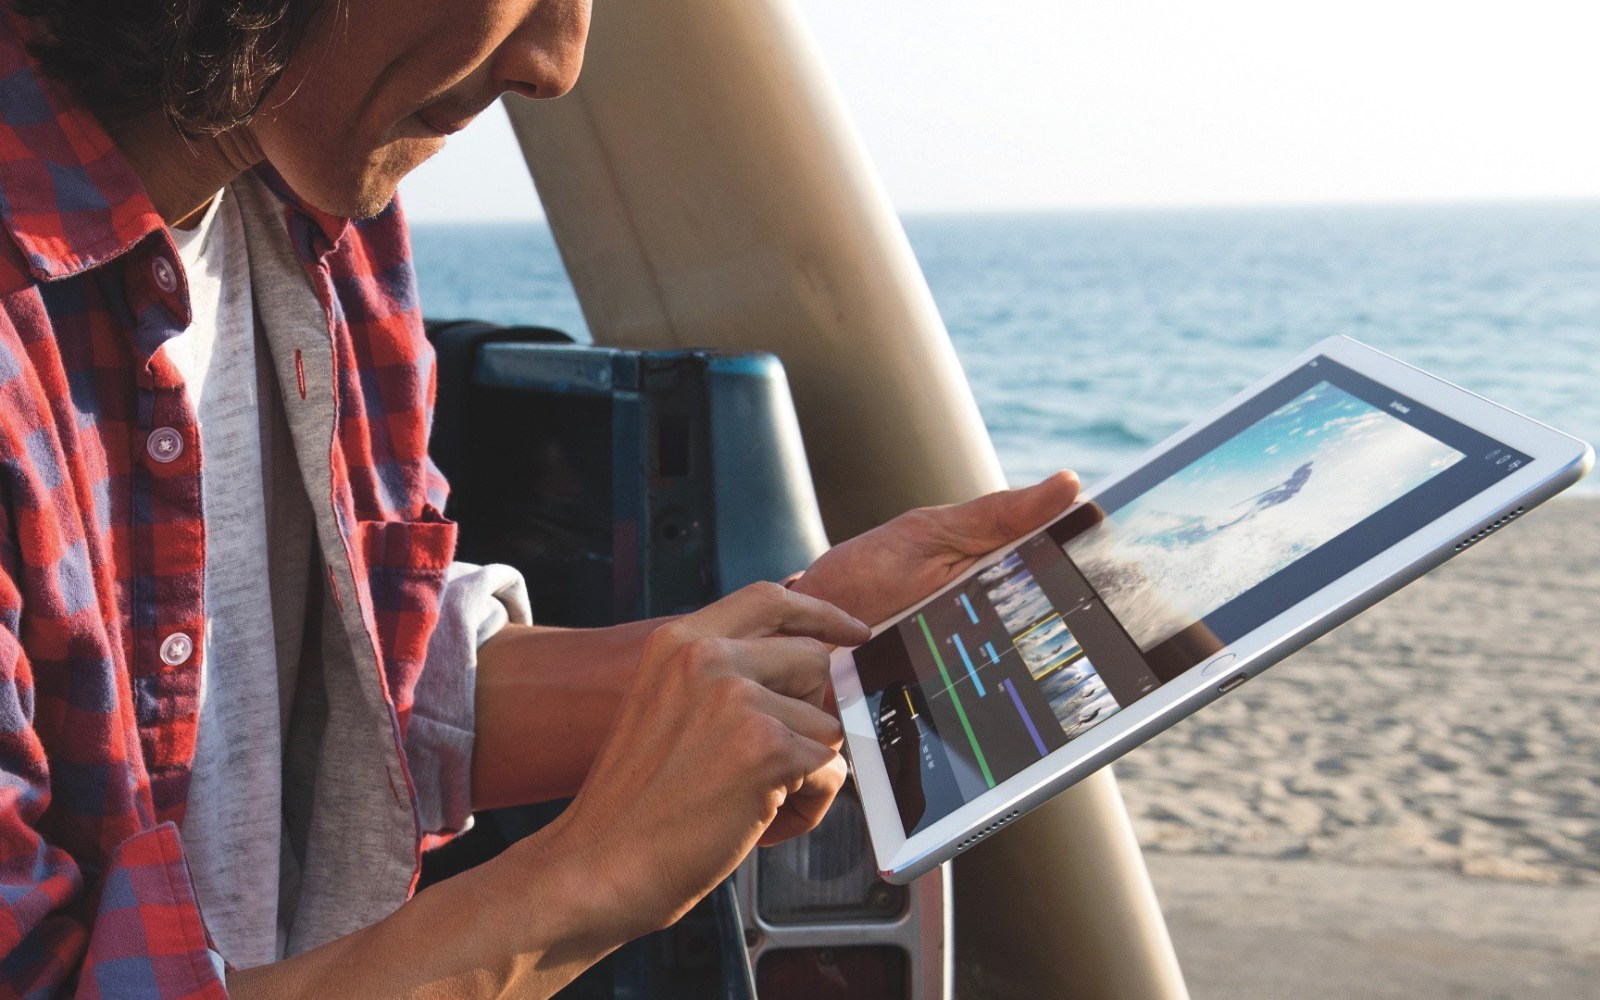 Apple's 12.9 inch iPad Pro goes on sale Wednesday in 40 countries, available at retail stores later in the week